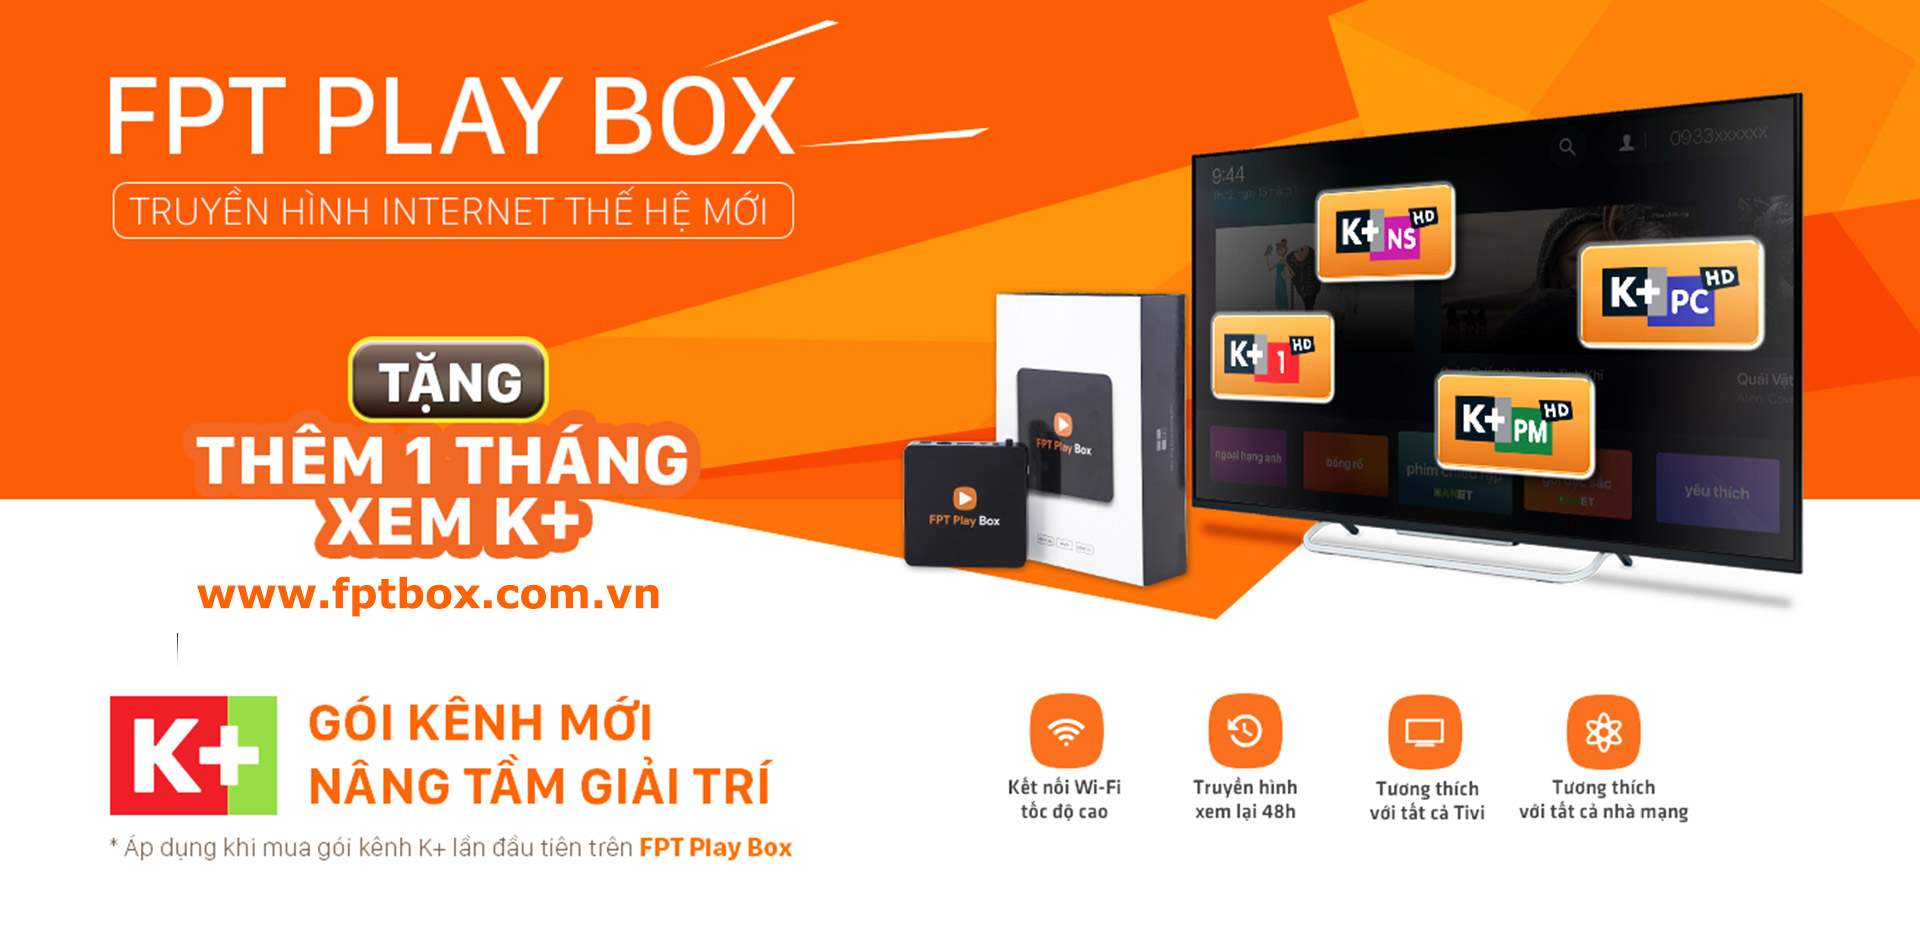 K+ FPT Play Box